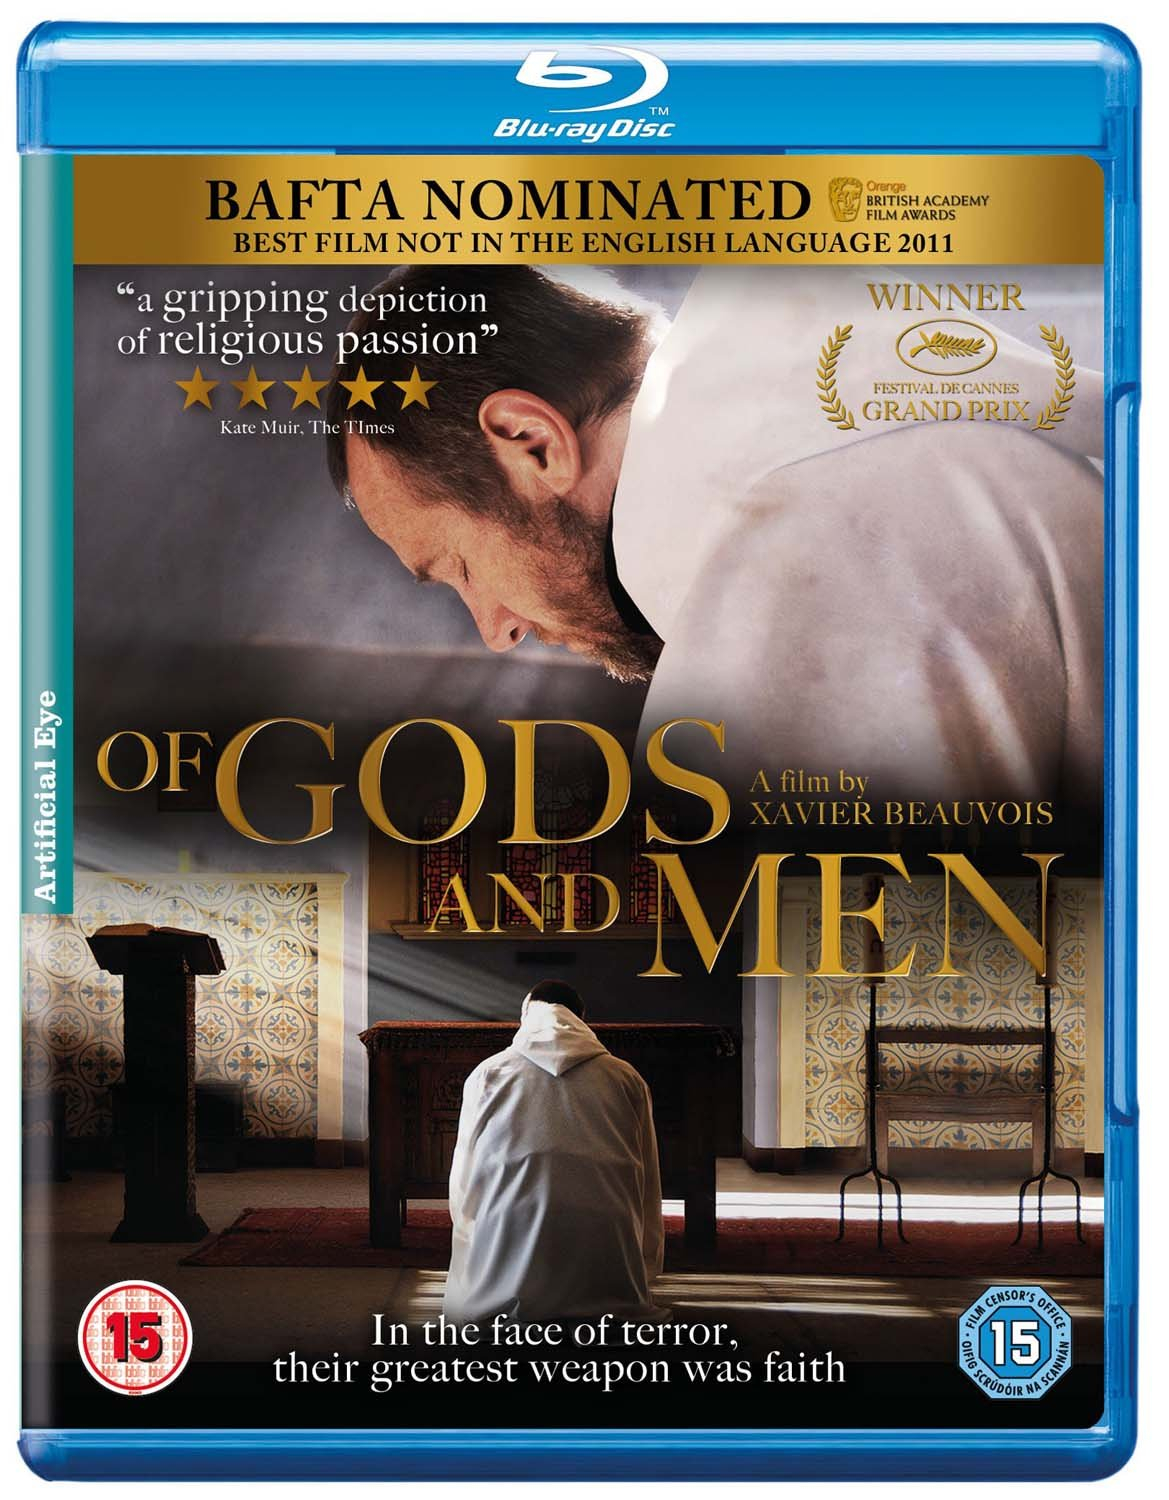 Buy Of Gods and Men (Blu-ray)